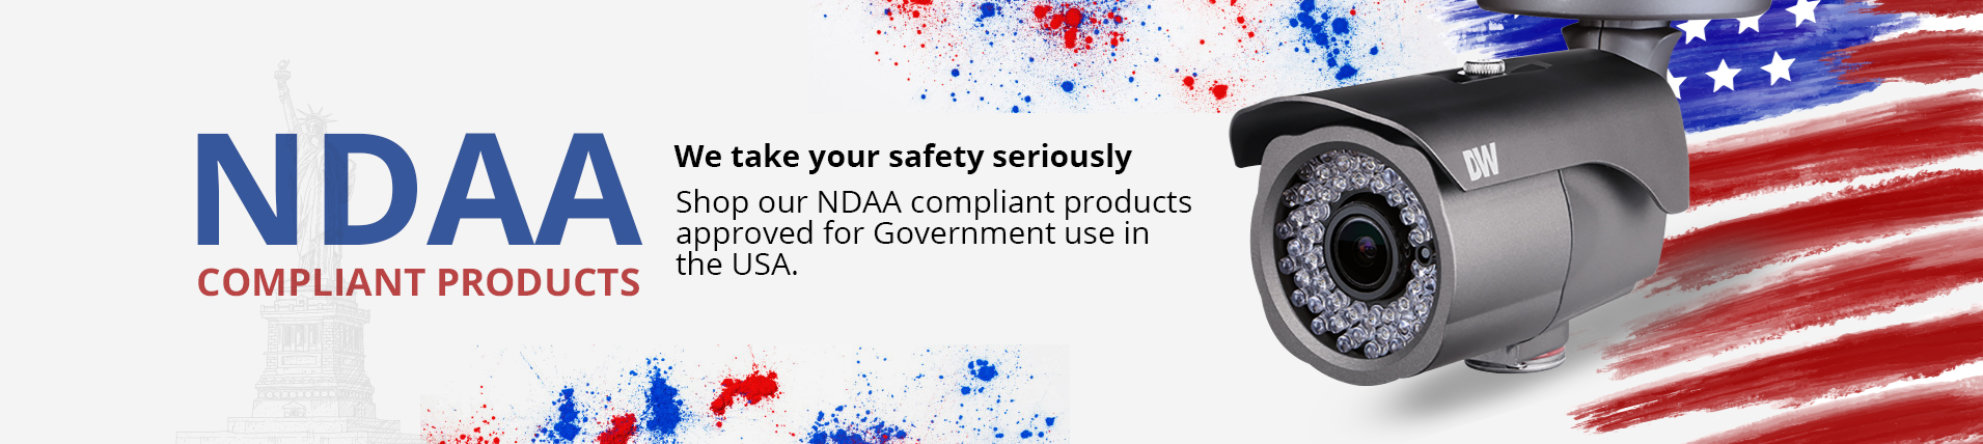 NDAA Compliant Products